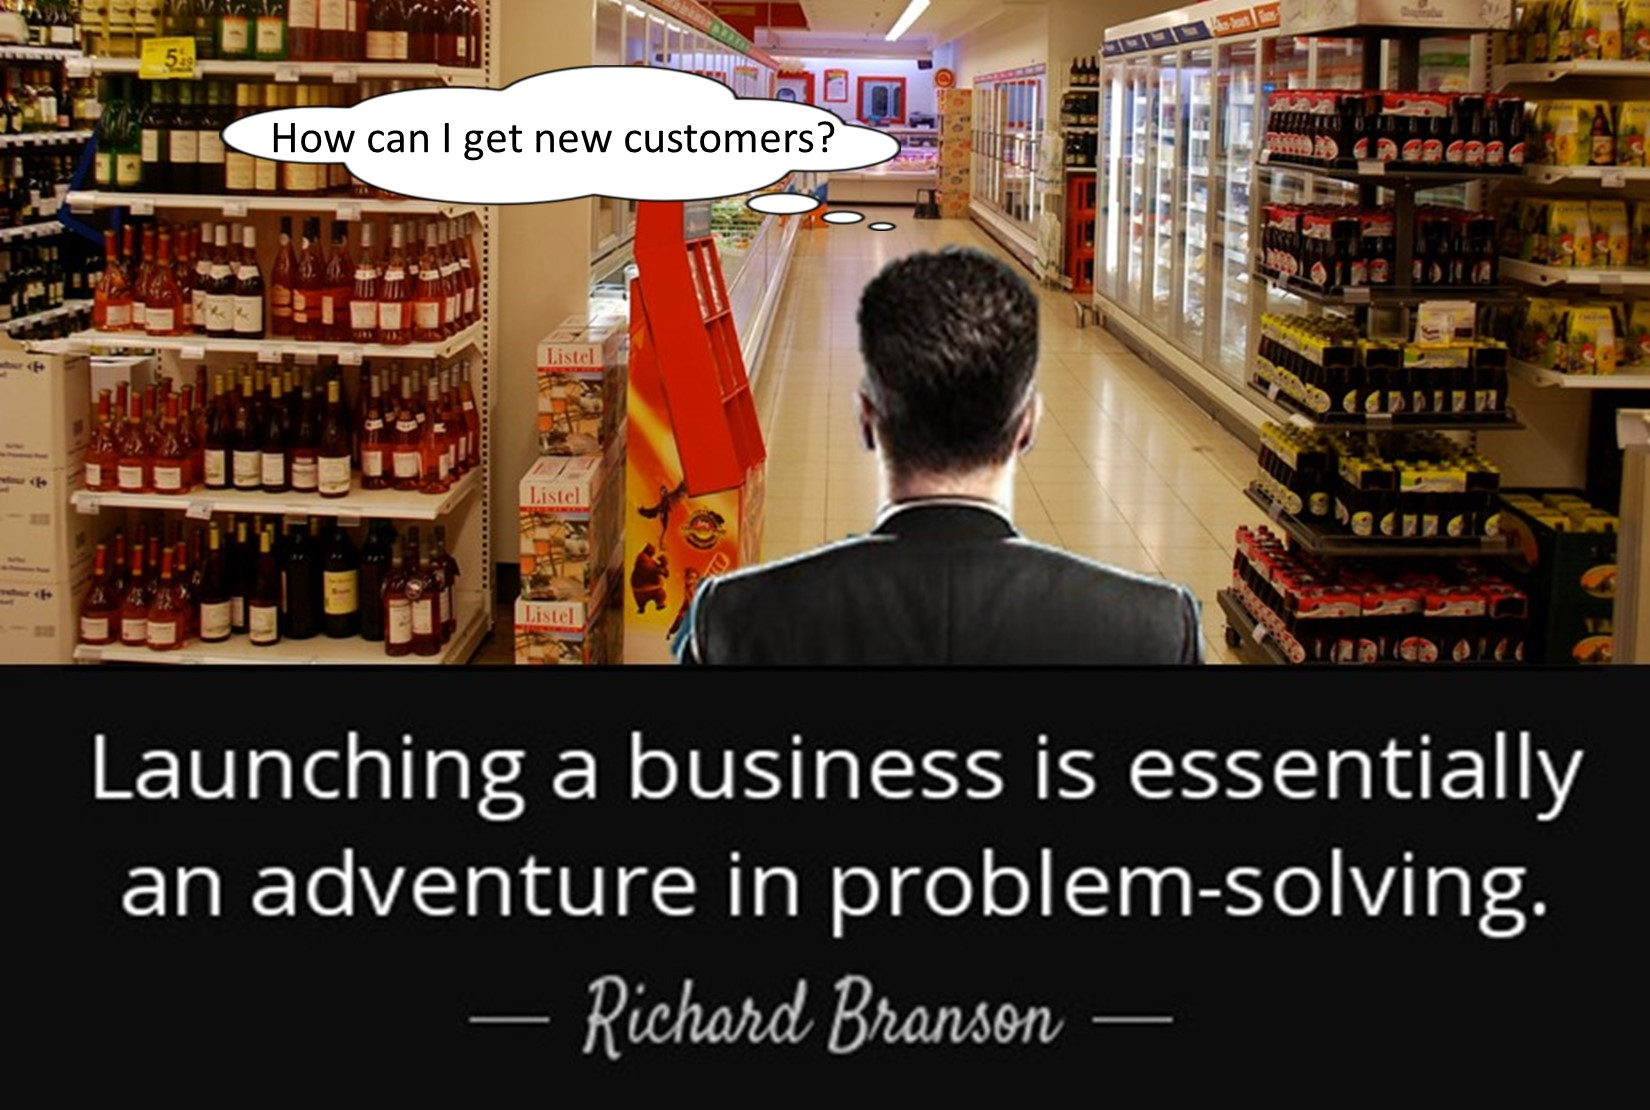 Launching a business is an adventure in problem solving.